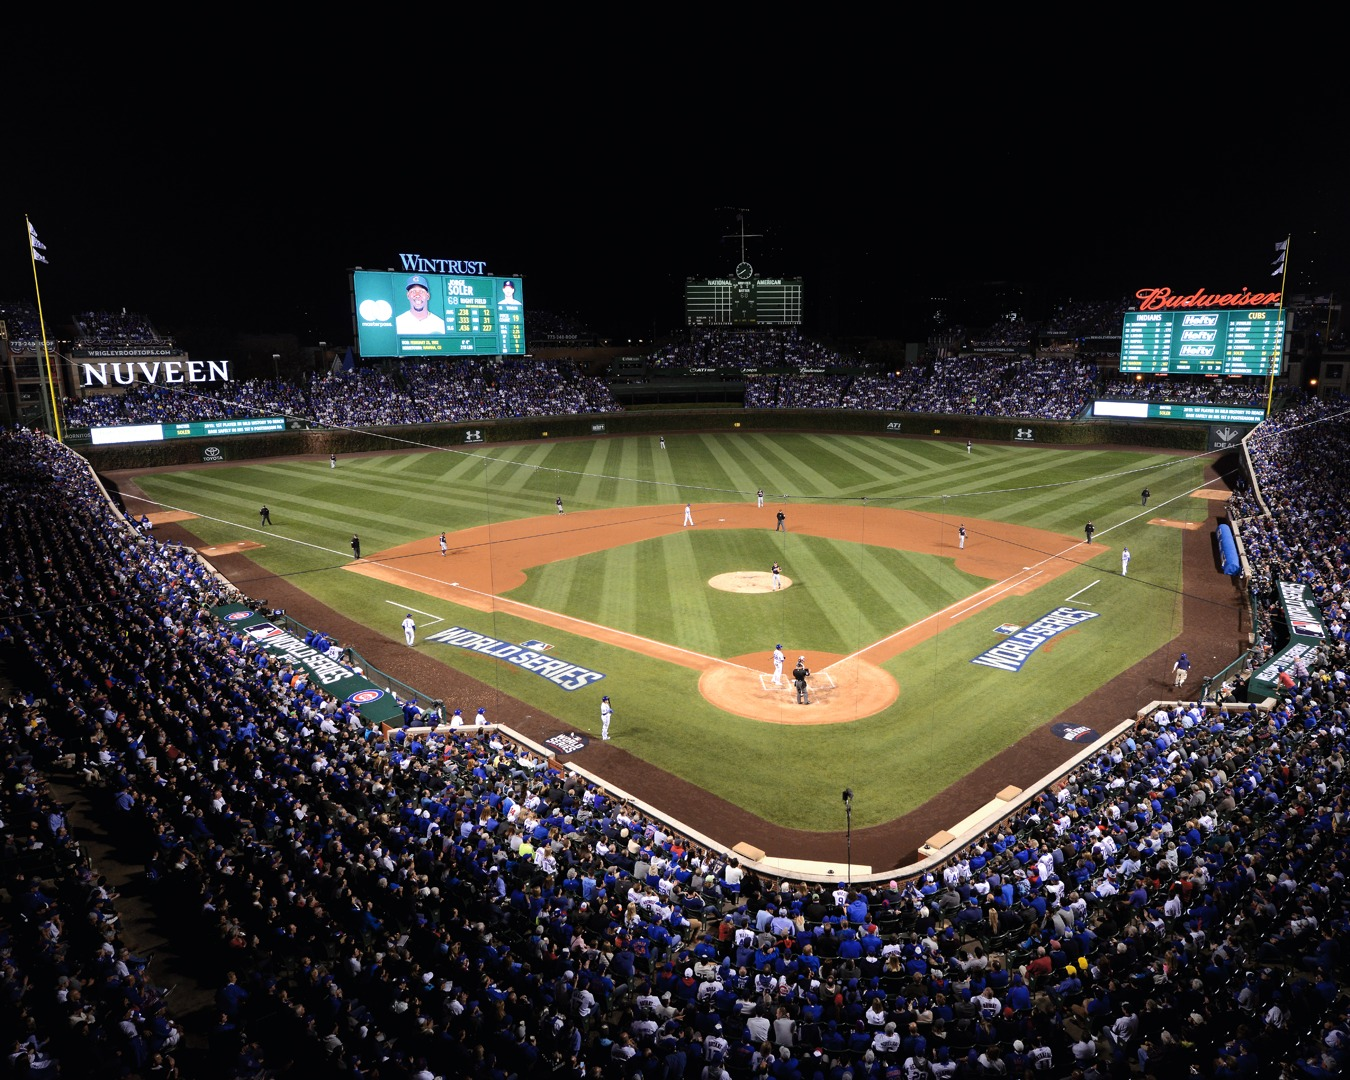 Wrigley Is Rocking Chicago Cubs 2016 World Series